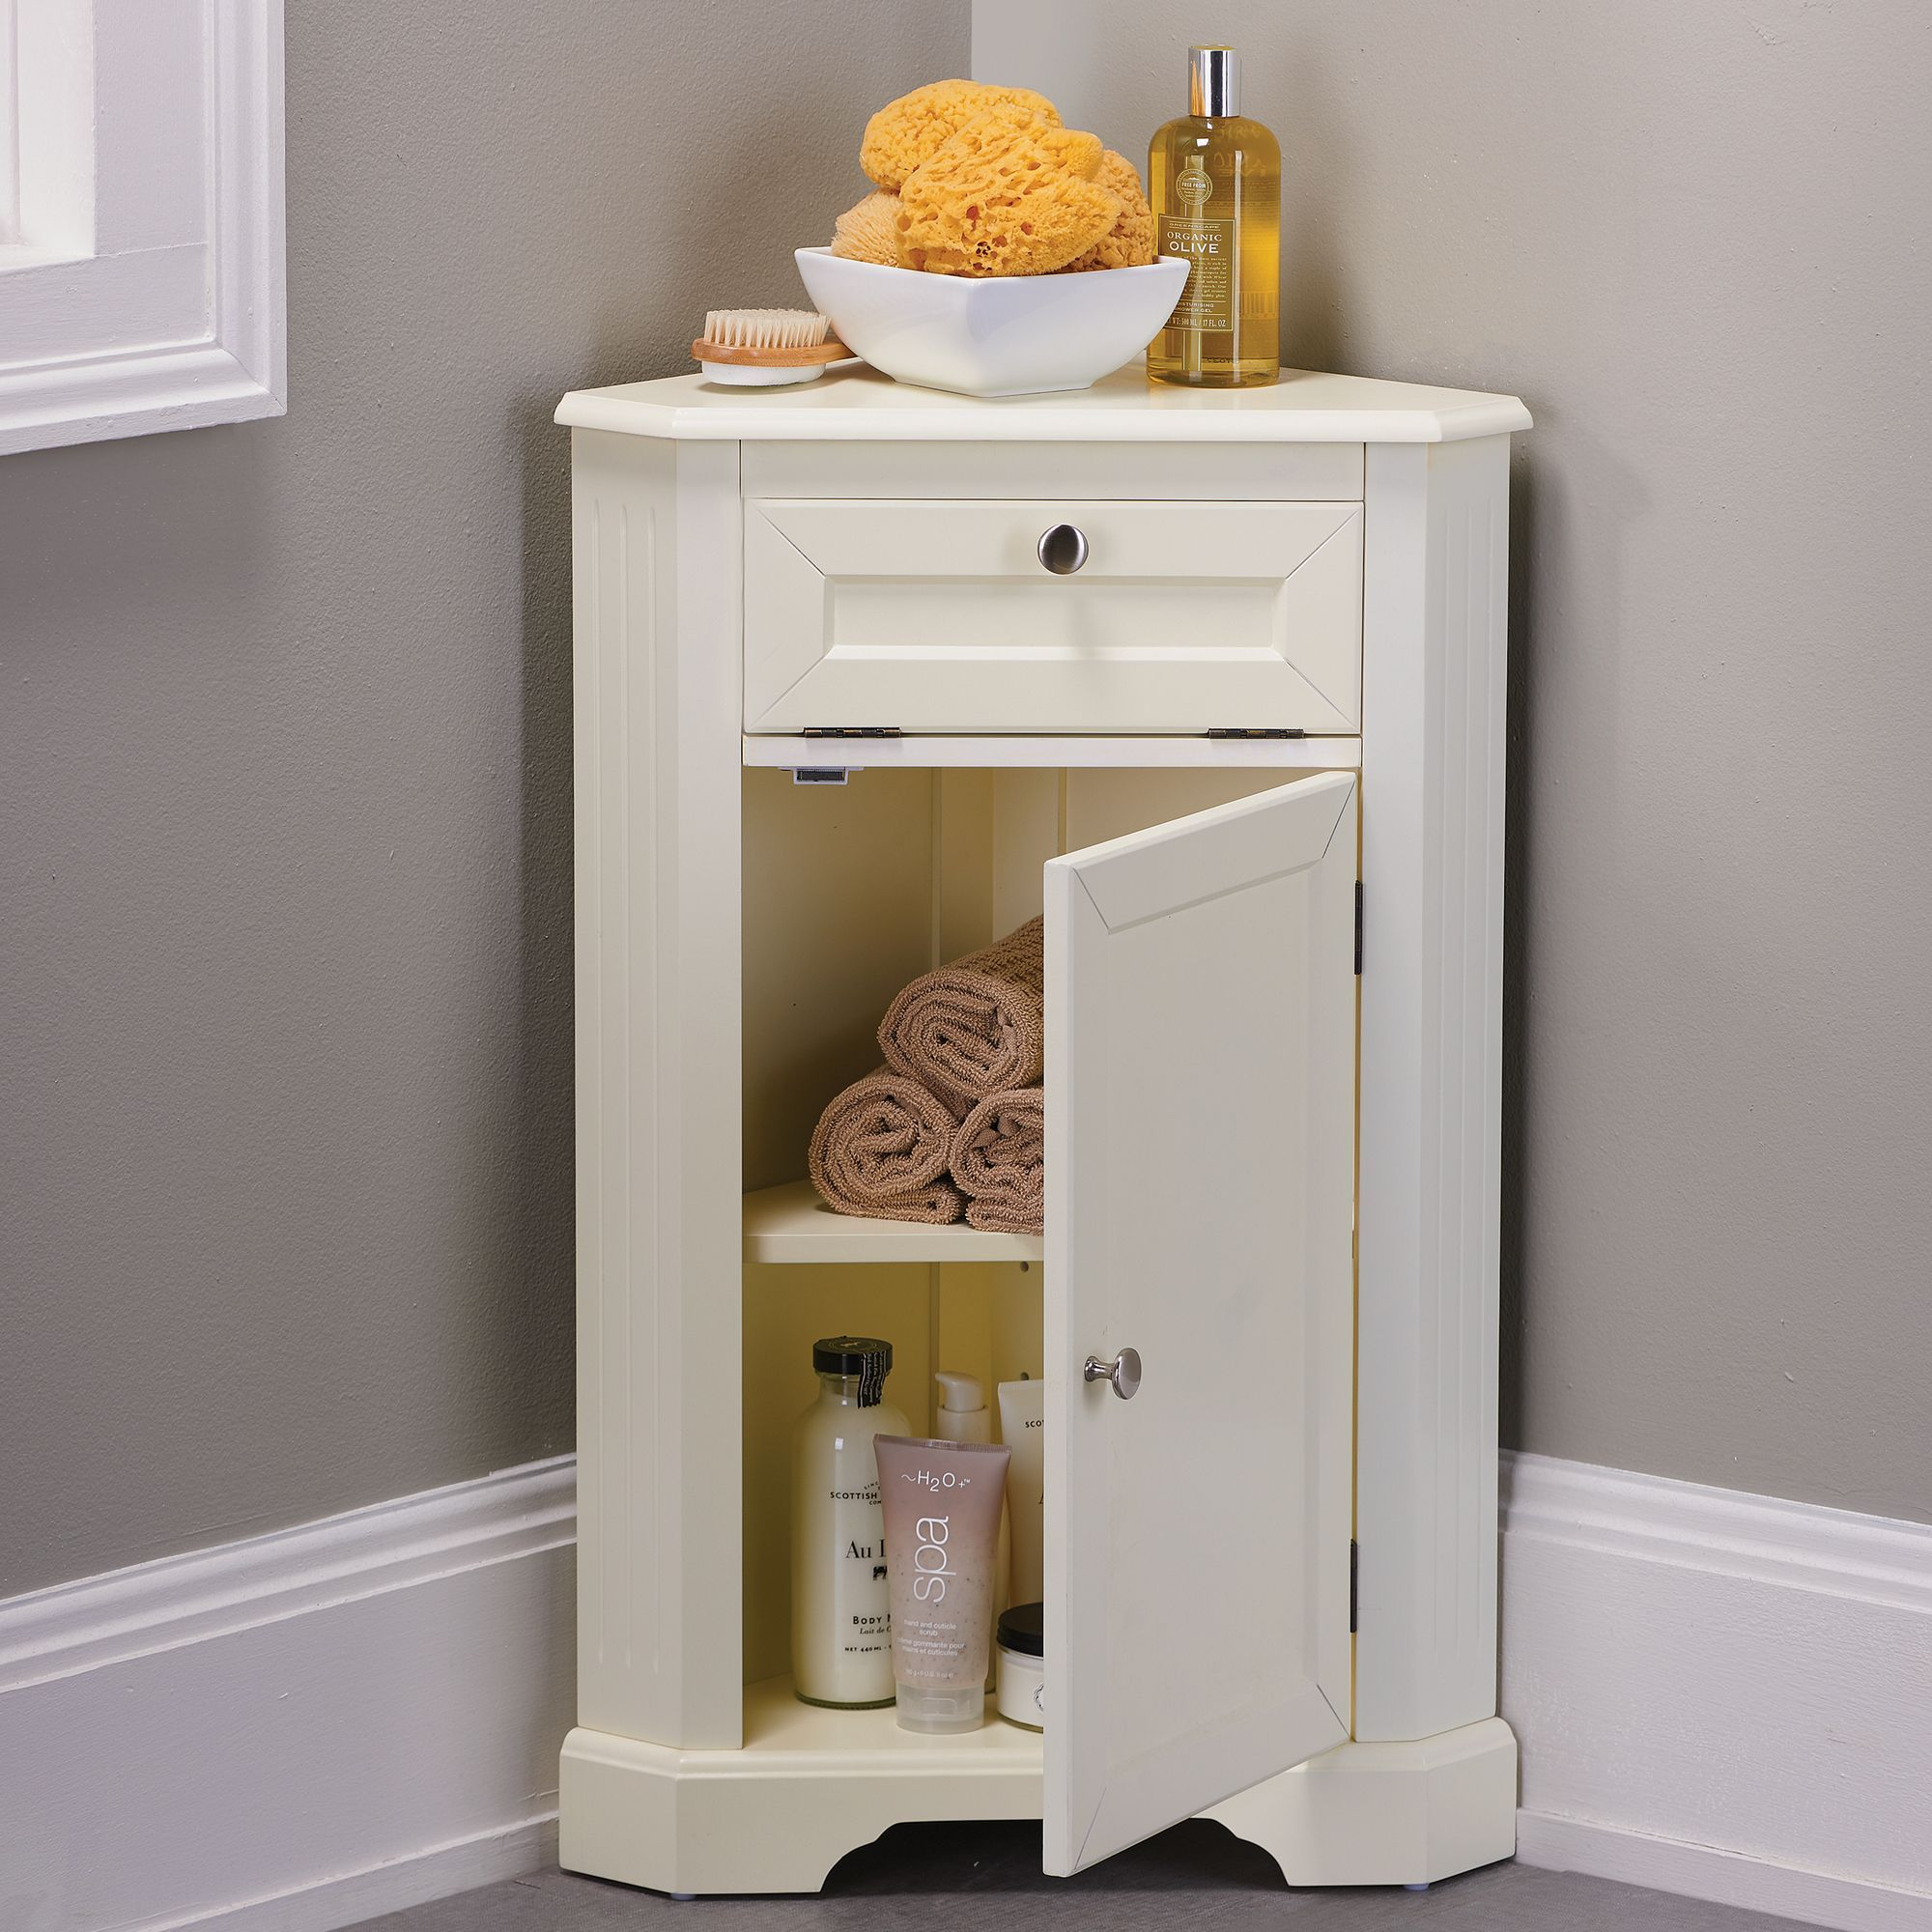 cabinet bathrooms small in pin solutions bathroom space provide our cabinets excellent weatherby for with corner storage maximize furniture